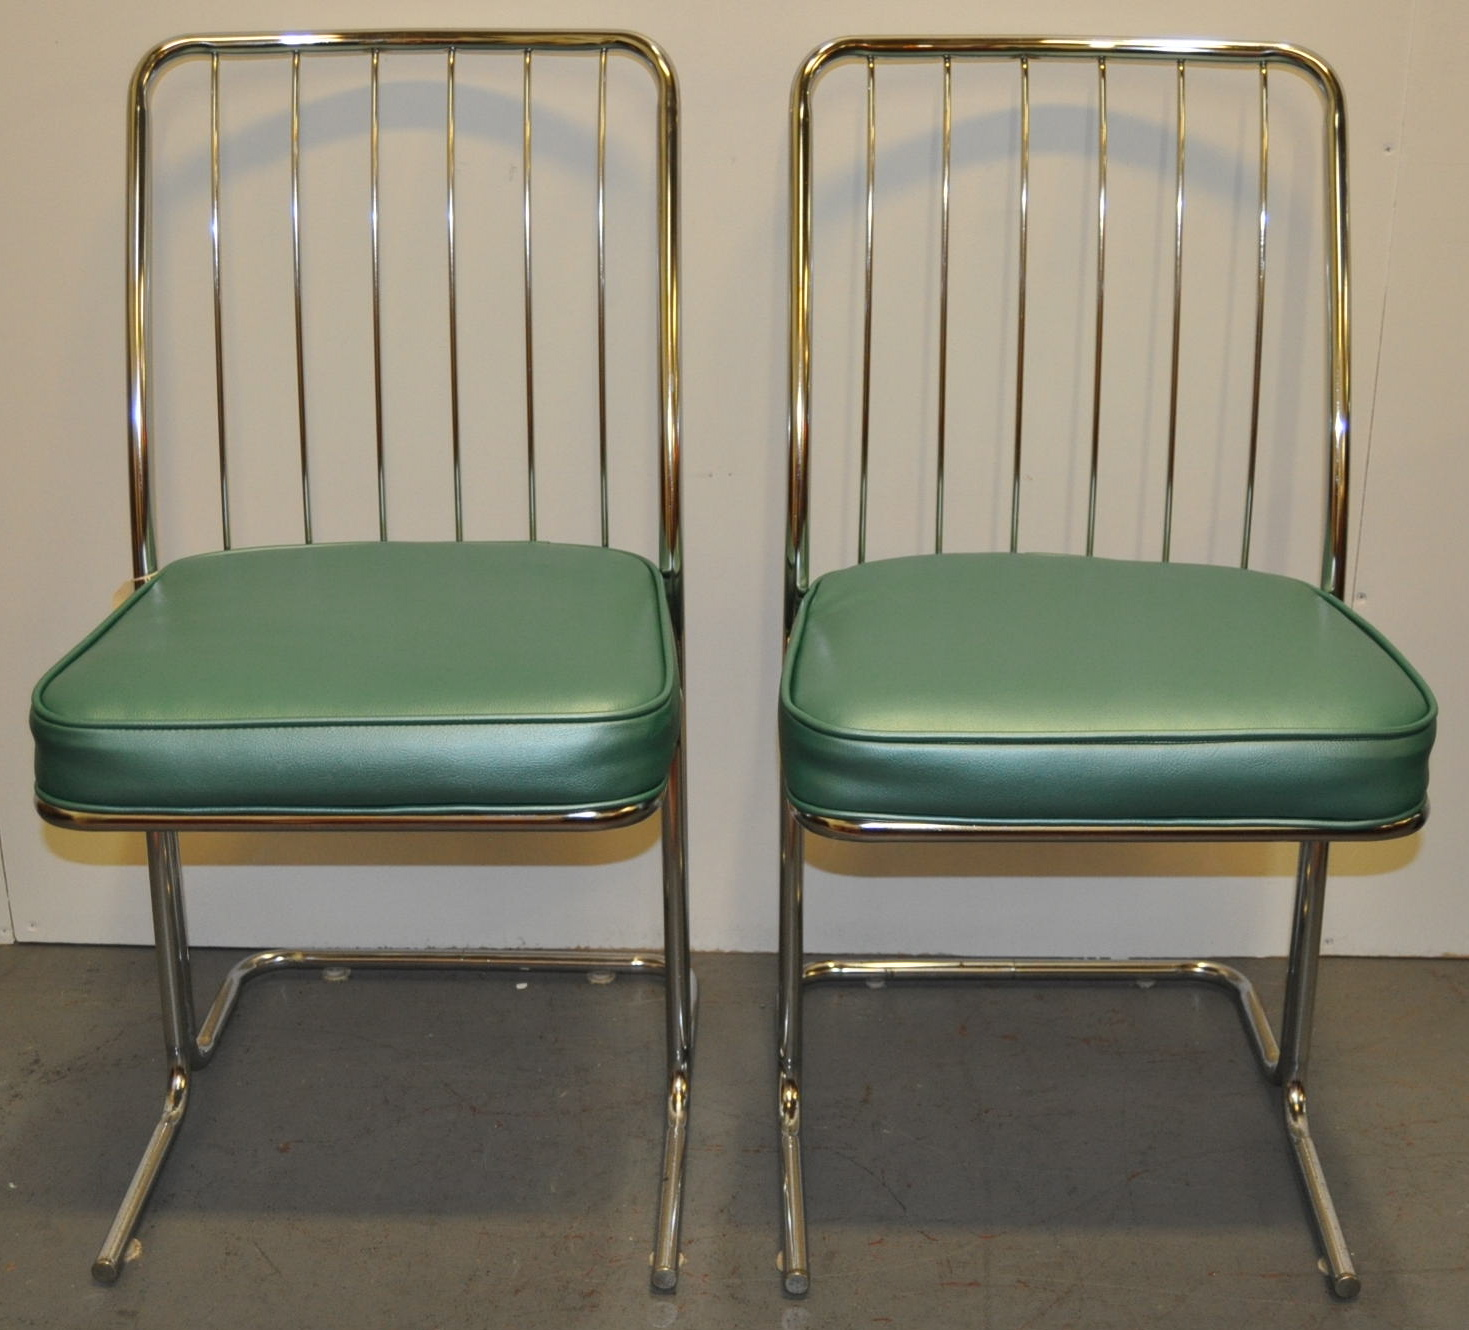 1950s Chrome & Vinyl Kitchen Chairs  Set Of Four  Chairish. Contemporary Living Room Designs C4. Living Room Chairs Under 200. Small Living Room Paint Colors. Country Valances For Living Room. The Living Room Cafe Abu Dhabi Location. Living Rooms With Corner Fireplaces Decorating. Beach House Living Room Furniture. Furniture Placement In A Rectangular Living Room